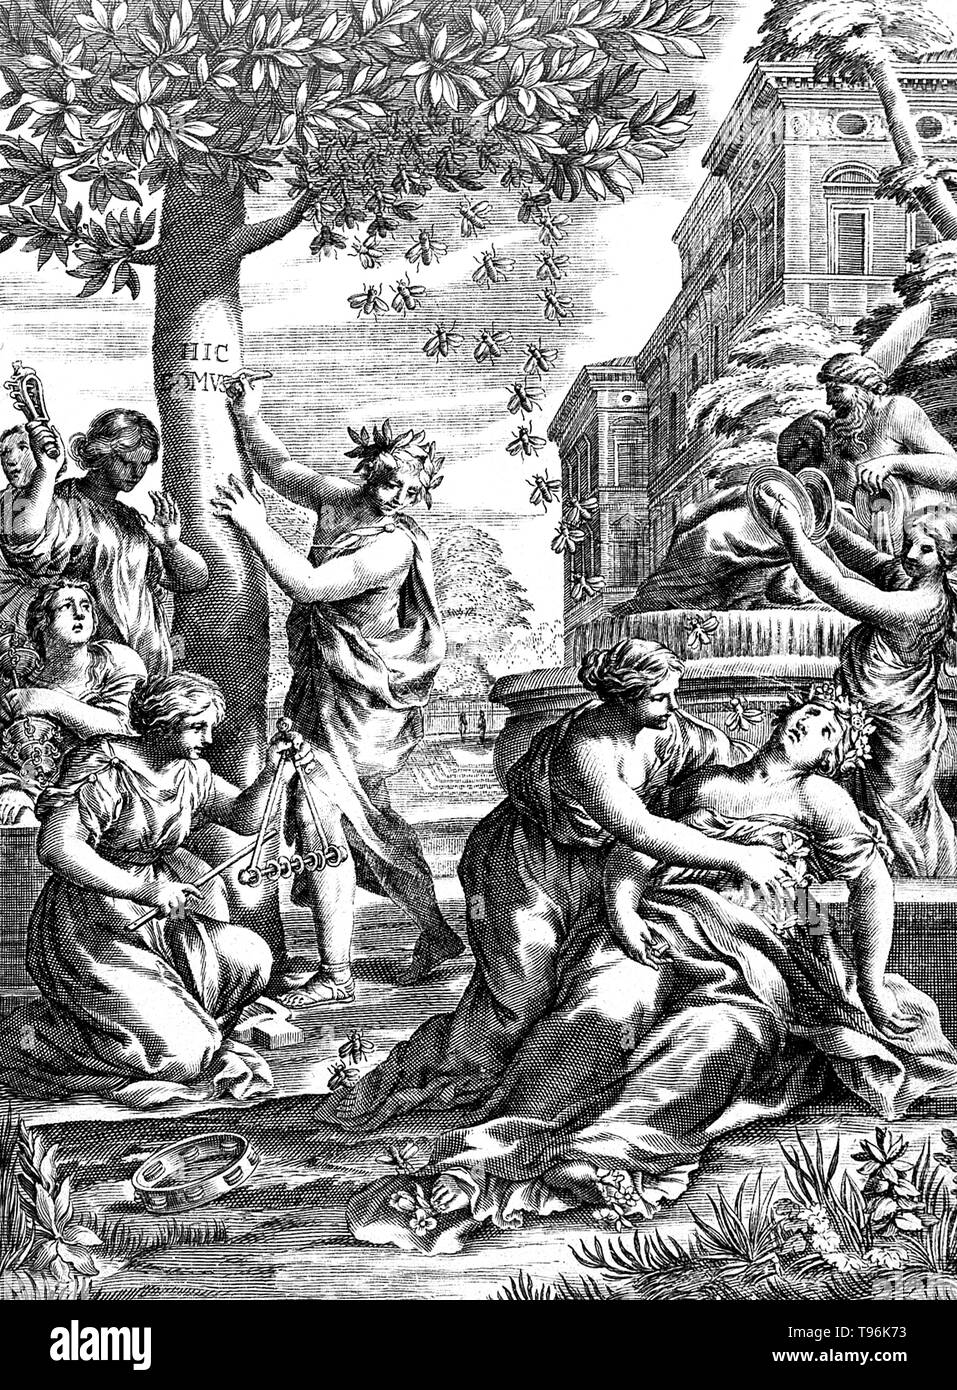 Group of women (nymphs) in classical robes, playing music next to a fountain. One woman has been stung by a bee and is lying on the ground. A bee sting is a sting from a bee (honey bee, bumblebee, sweat bee, etc.). The stings of most of these species can be quite painful, and are therefore keenly avoided by many people. A honey bee that is away from the hive foraging for nectar or pollen will rarely sting, except when stepped on or roughly handled. Honey bees will actively seek out and sting when they perceive the hive to be threatened, often being alerted to this by the release of attack pher - Stock Image